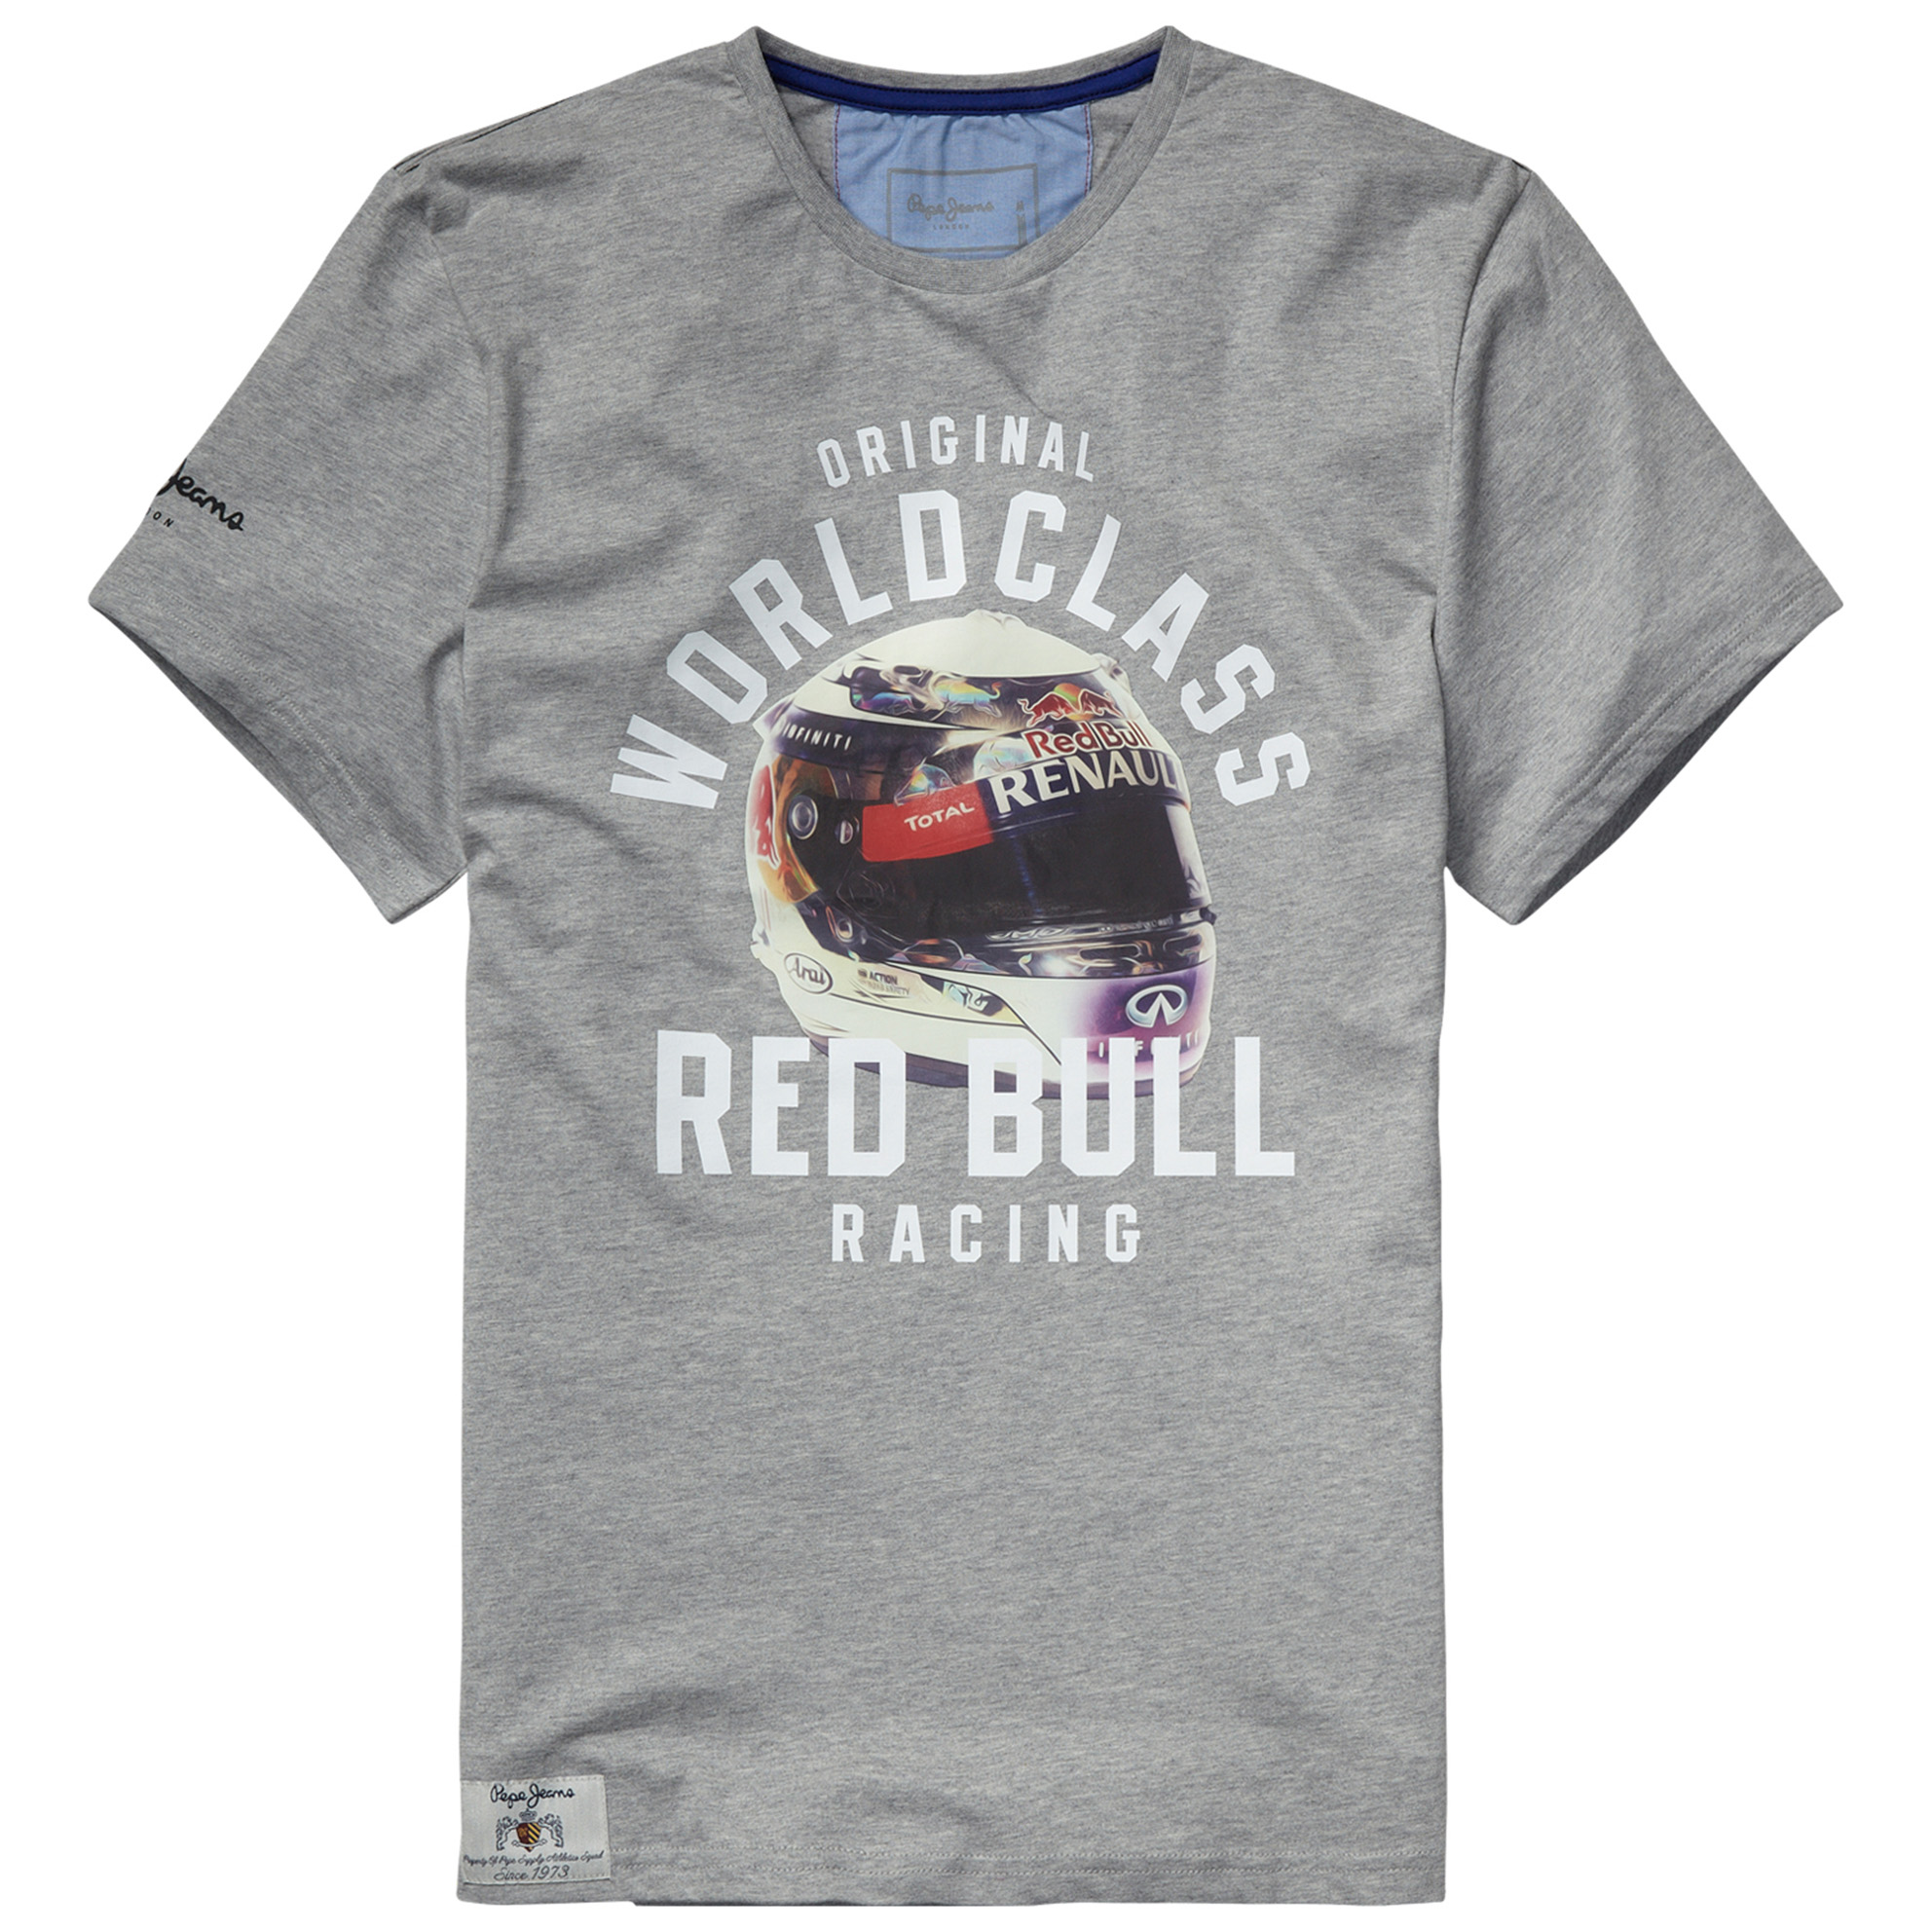 Infiniti Red Bull Racing by Pepe Jeans V-Driver T-Shirt